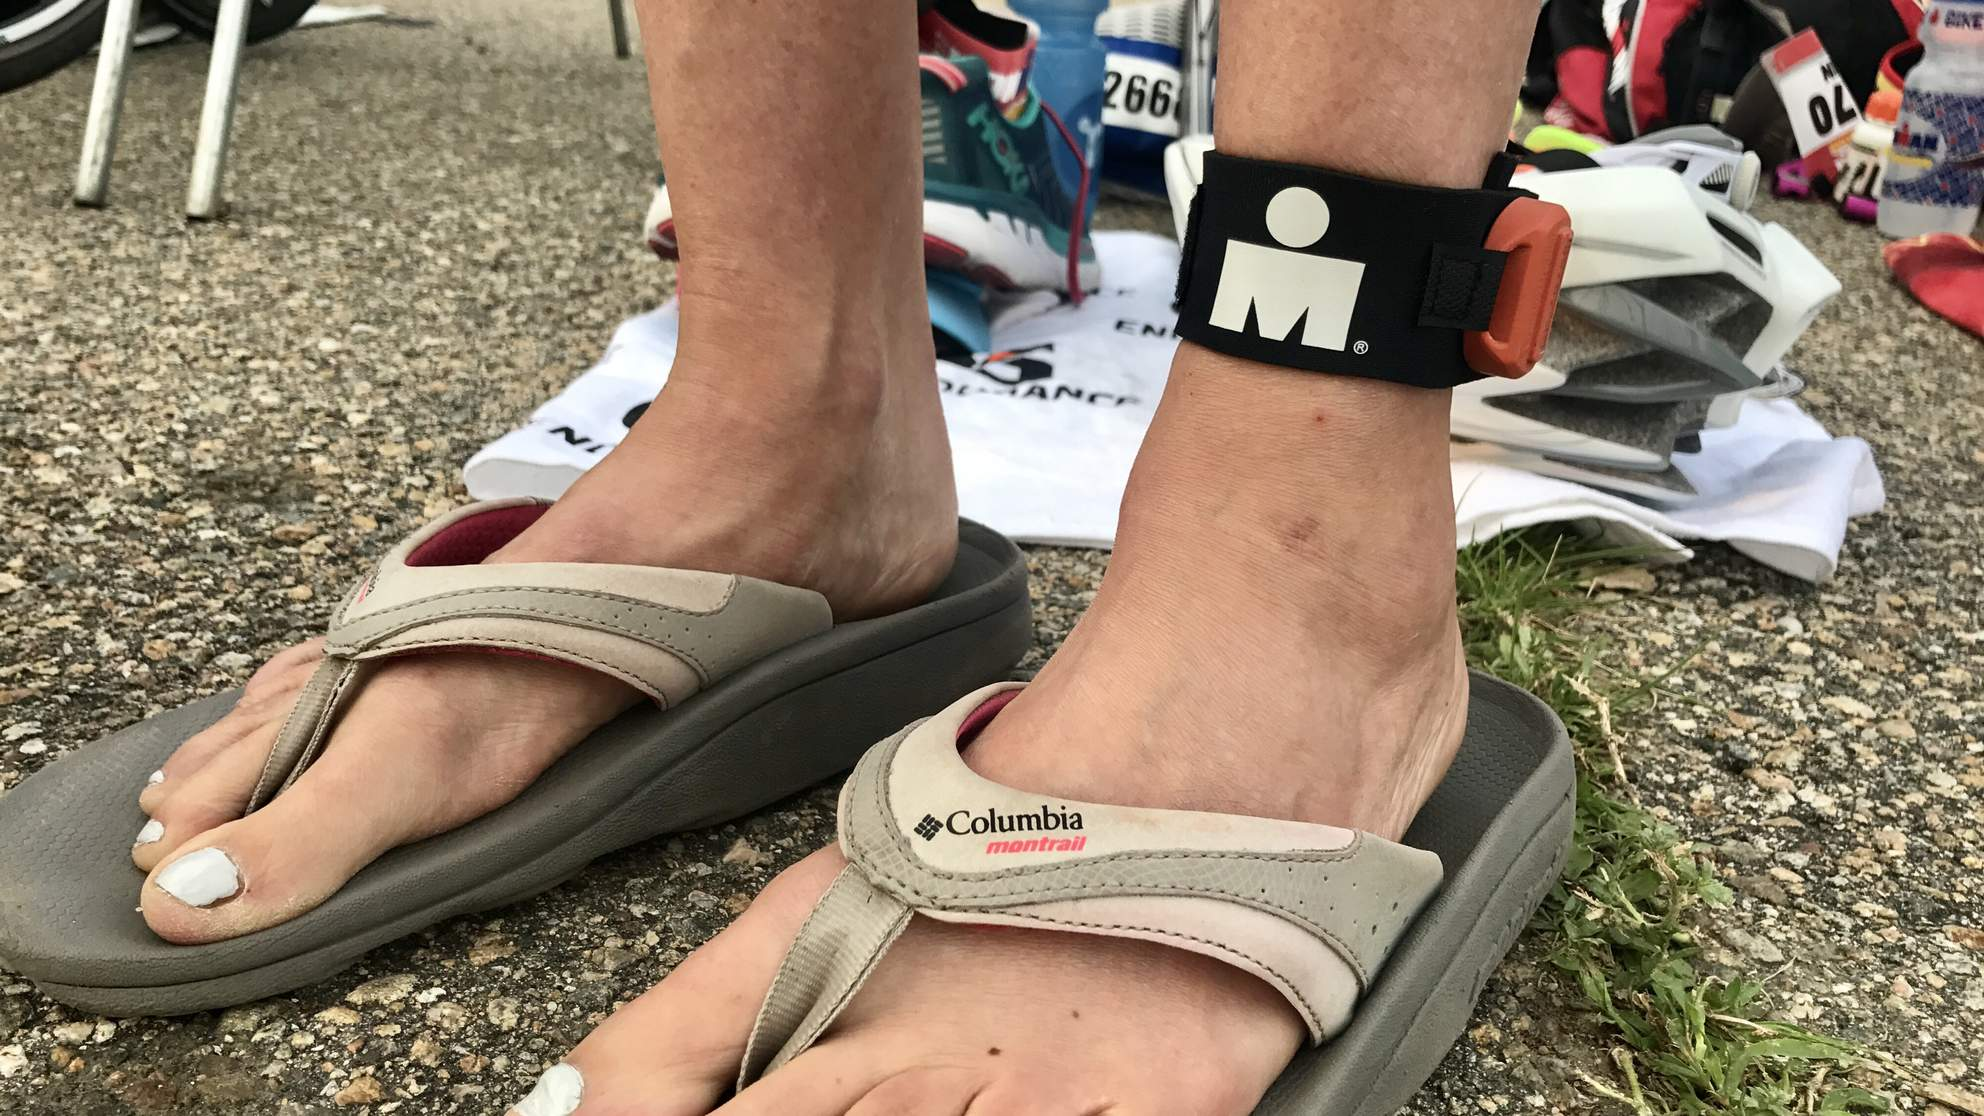 allison-pattillo-ironman-foot